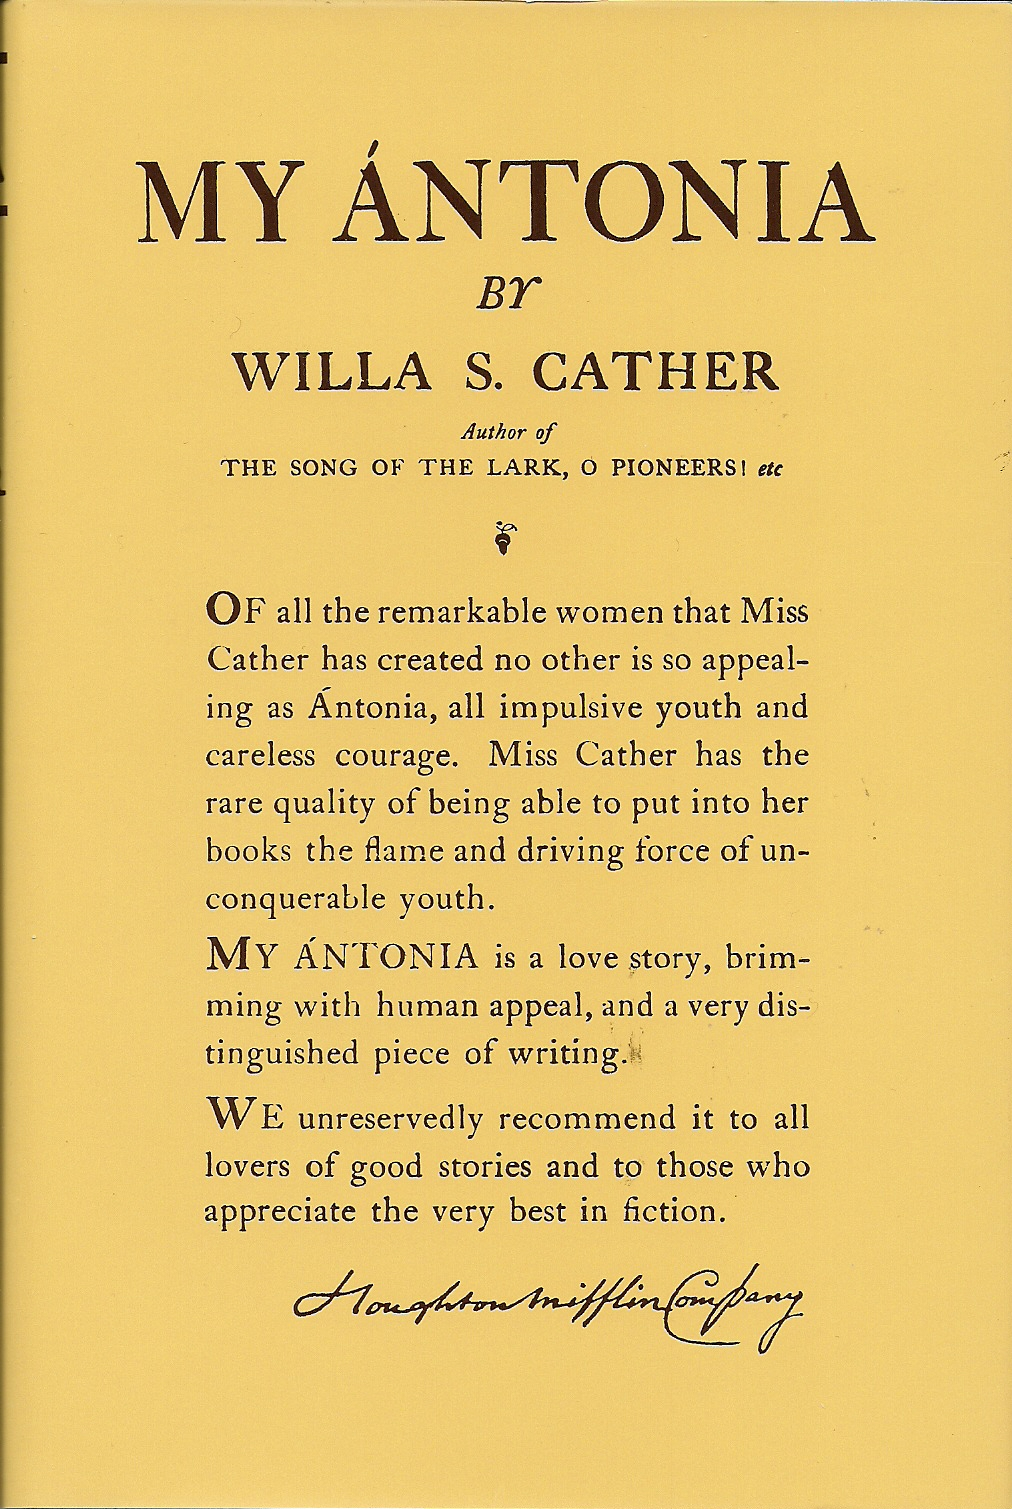 Willa Cather, My Ántonia [Boston; 1918] - One thing I've learned about myself in taking on this reading project (reading my way through the acclaimed fiction of the 1910s) is that although I'm always very reluctant to read rural fiction from other nations (nothing sounds dingier or more depressing than a novel of Spanish, French, German, or Russian farm life), stories about pioneers struggling with the soil in the U.S. are always fascinating to me. Maybe it's sheer national chauvinism, or the lingering effect of ingesting Laura Ingalls Wilder at a formative age -- or maybe U.S. writers of this era, who grew up on farms and were educated in cities, were better equipped to make lasting, fully human portraits of their country's rural life than bourgeois European writers looking down their noses at the peasantry.Anyway, Willa Cather is canonized enough that I've no need to explain why My Ántonia is great. Since I've been reading a lot of European fiction, I can recognize the (guileless?) optimism that characterizes the U.S. attitude towards life in the period, as just about everyone important ends happy and relatively prosperous. But the moment-to-moment sensation of reading the novel, the tracery of phrase and image, is so indelible, so deeply satisfying in itself that the story could be much worse than it is: Cather's prose is sturdy and strong enough to cover a multitude of sins. Only the prose of Virginia Woolf (so far in this project; translations can't count) equals her, and The Voyage Out isn't quite as good as My Ántonia; it peers deeper into minds, but does not organize them in relation to the world as successfully.It's taken me long enough to get around to reading Willa Cather, which I should have done in high school. But I'm glad to have done it now.October 22, 2017